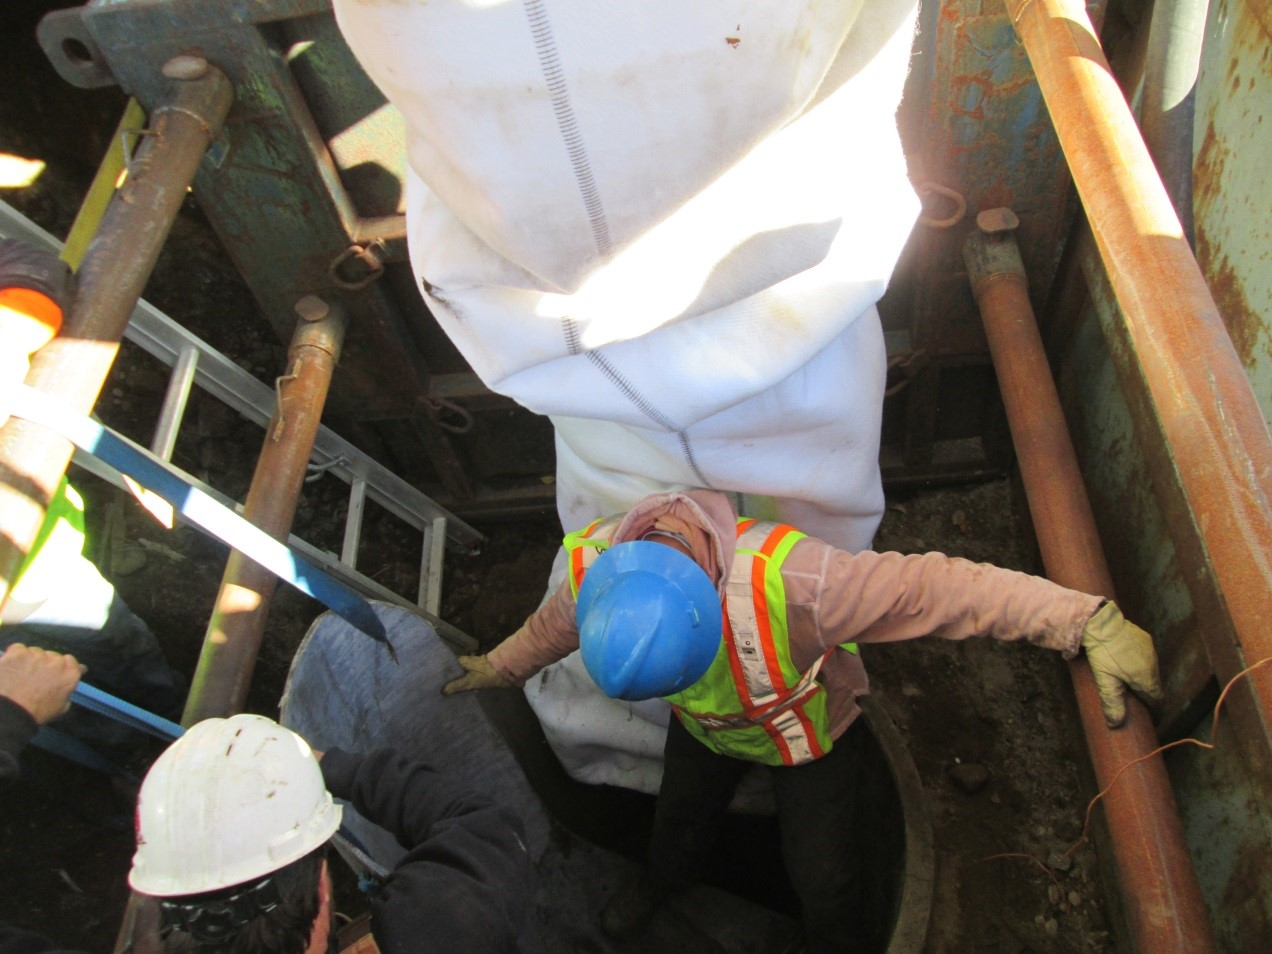 Zwald Tansport, Inc. and Trenchless Pipe Repairs,LLC(TPR)